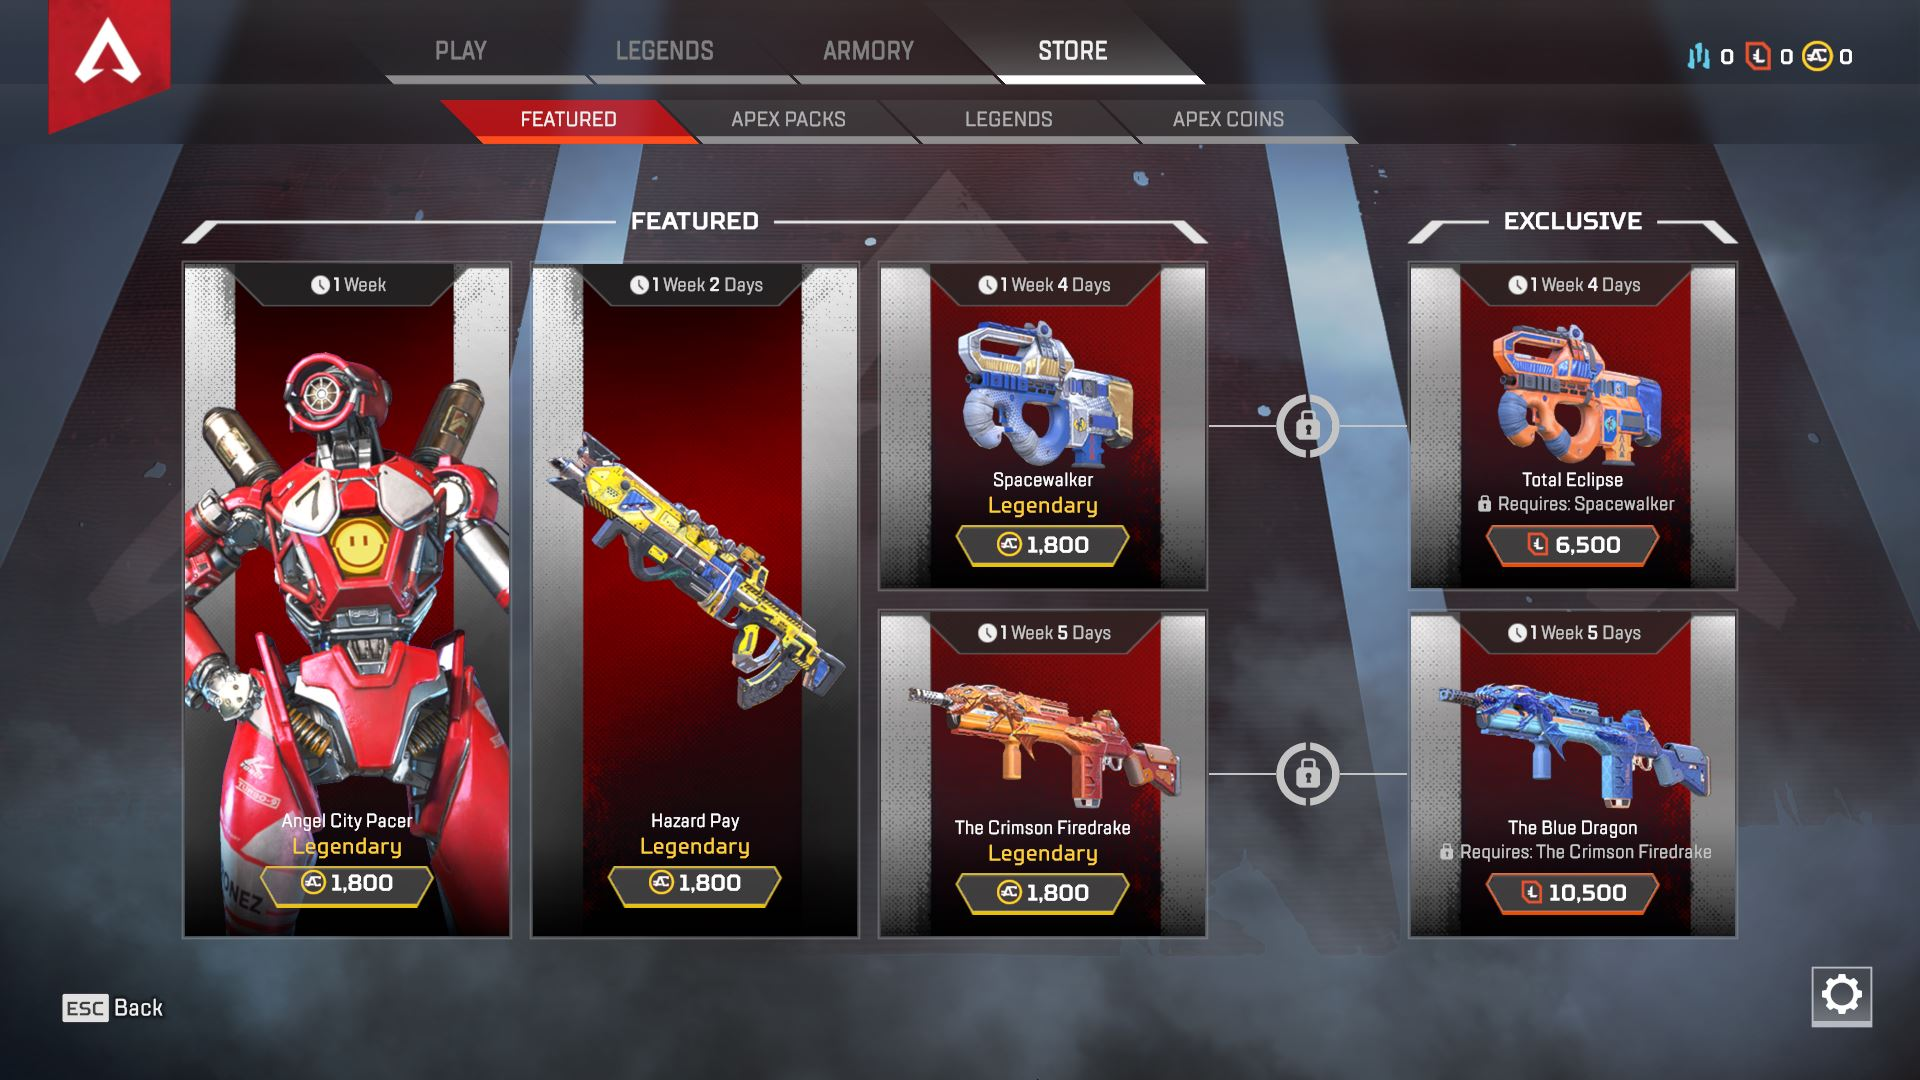 There are a variety of different microtransaction options available in Apex Legends.